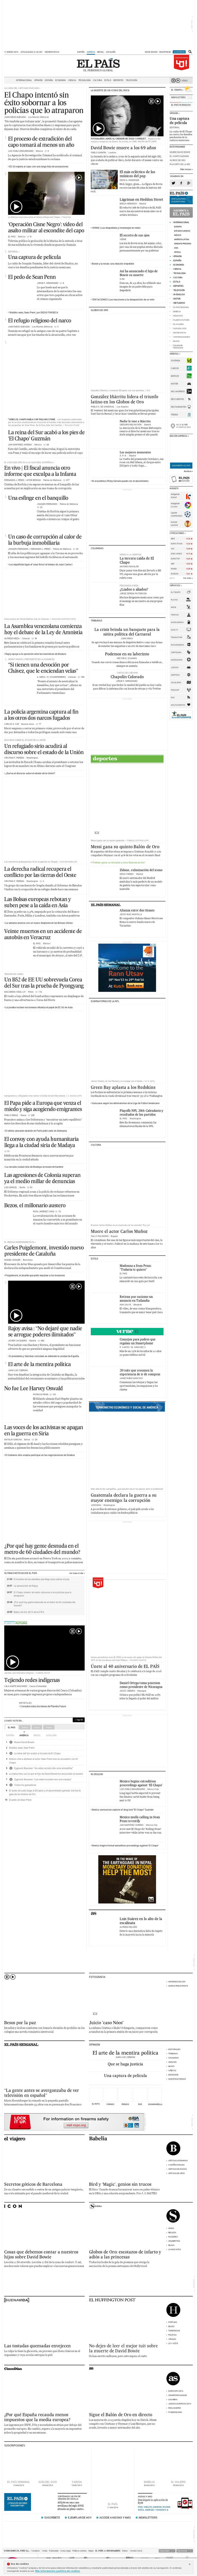 El Pais at Monday Jan. 11, 2016, 8:19 p.m. UTC